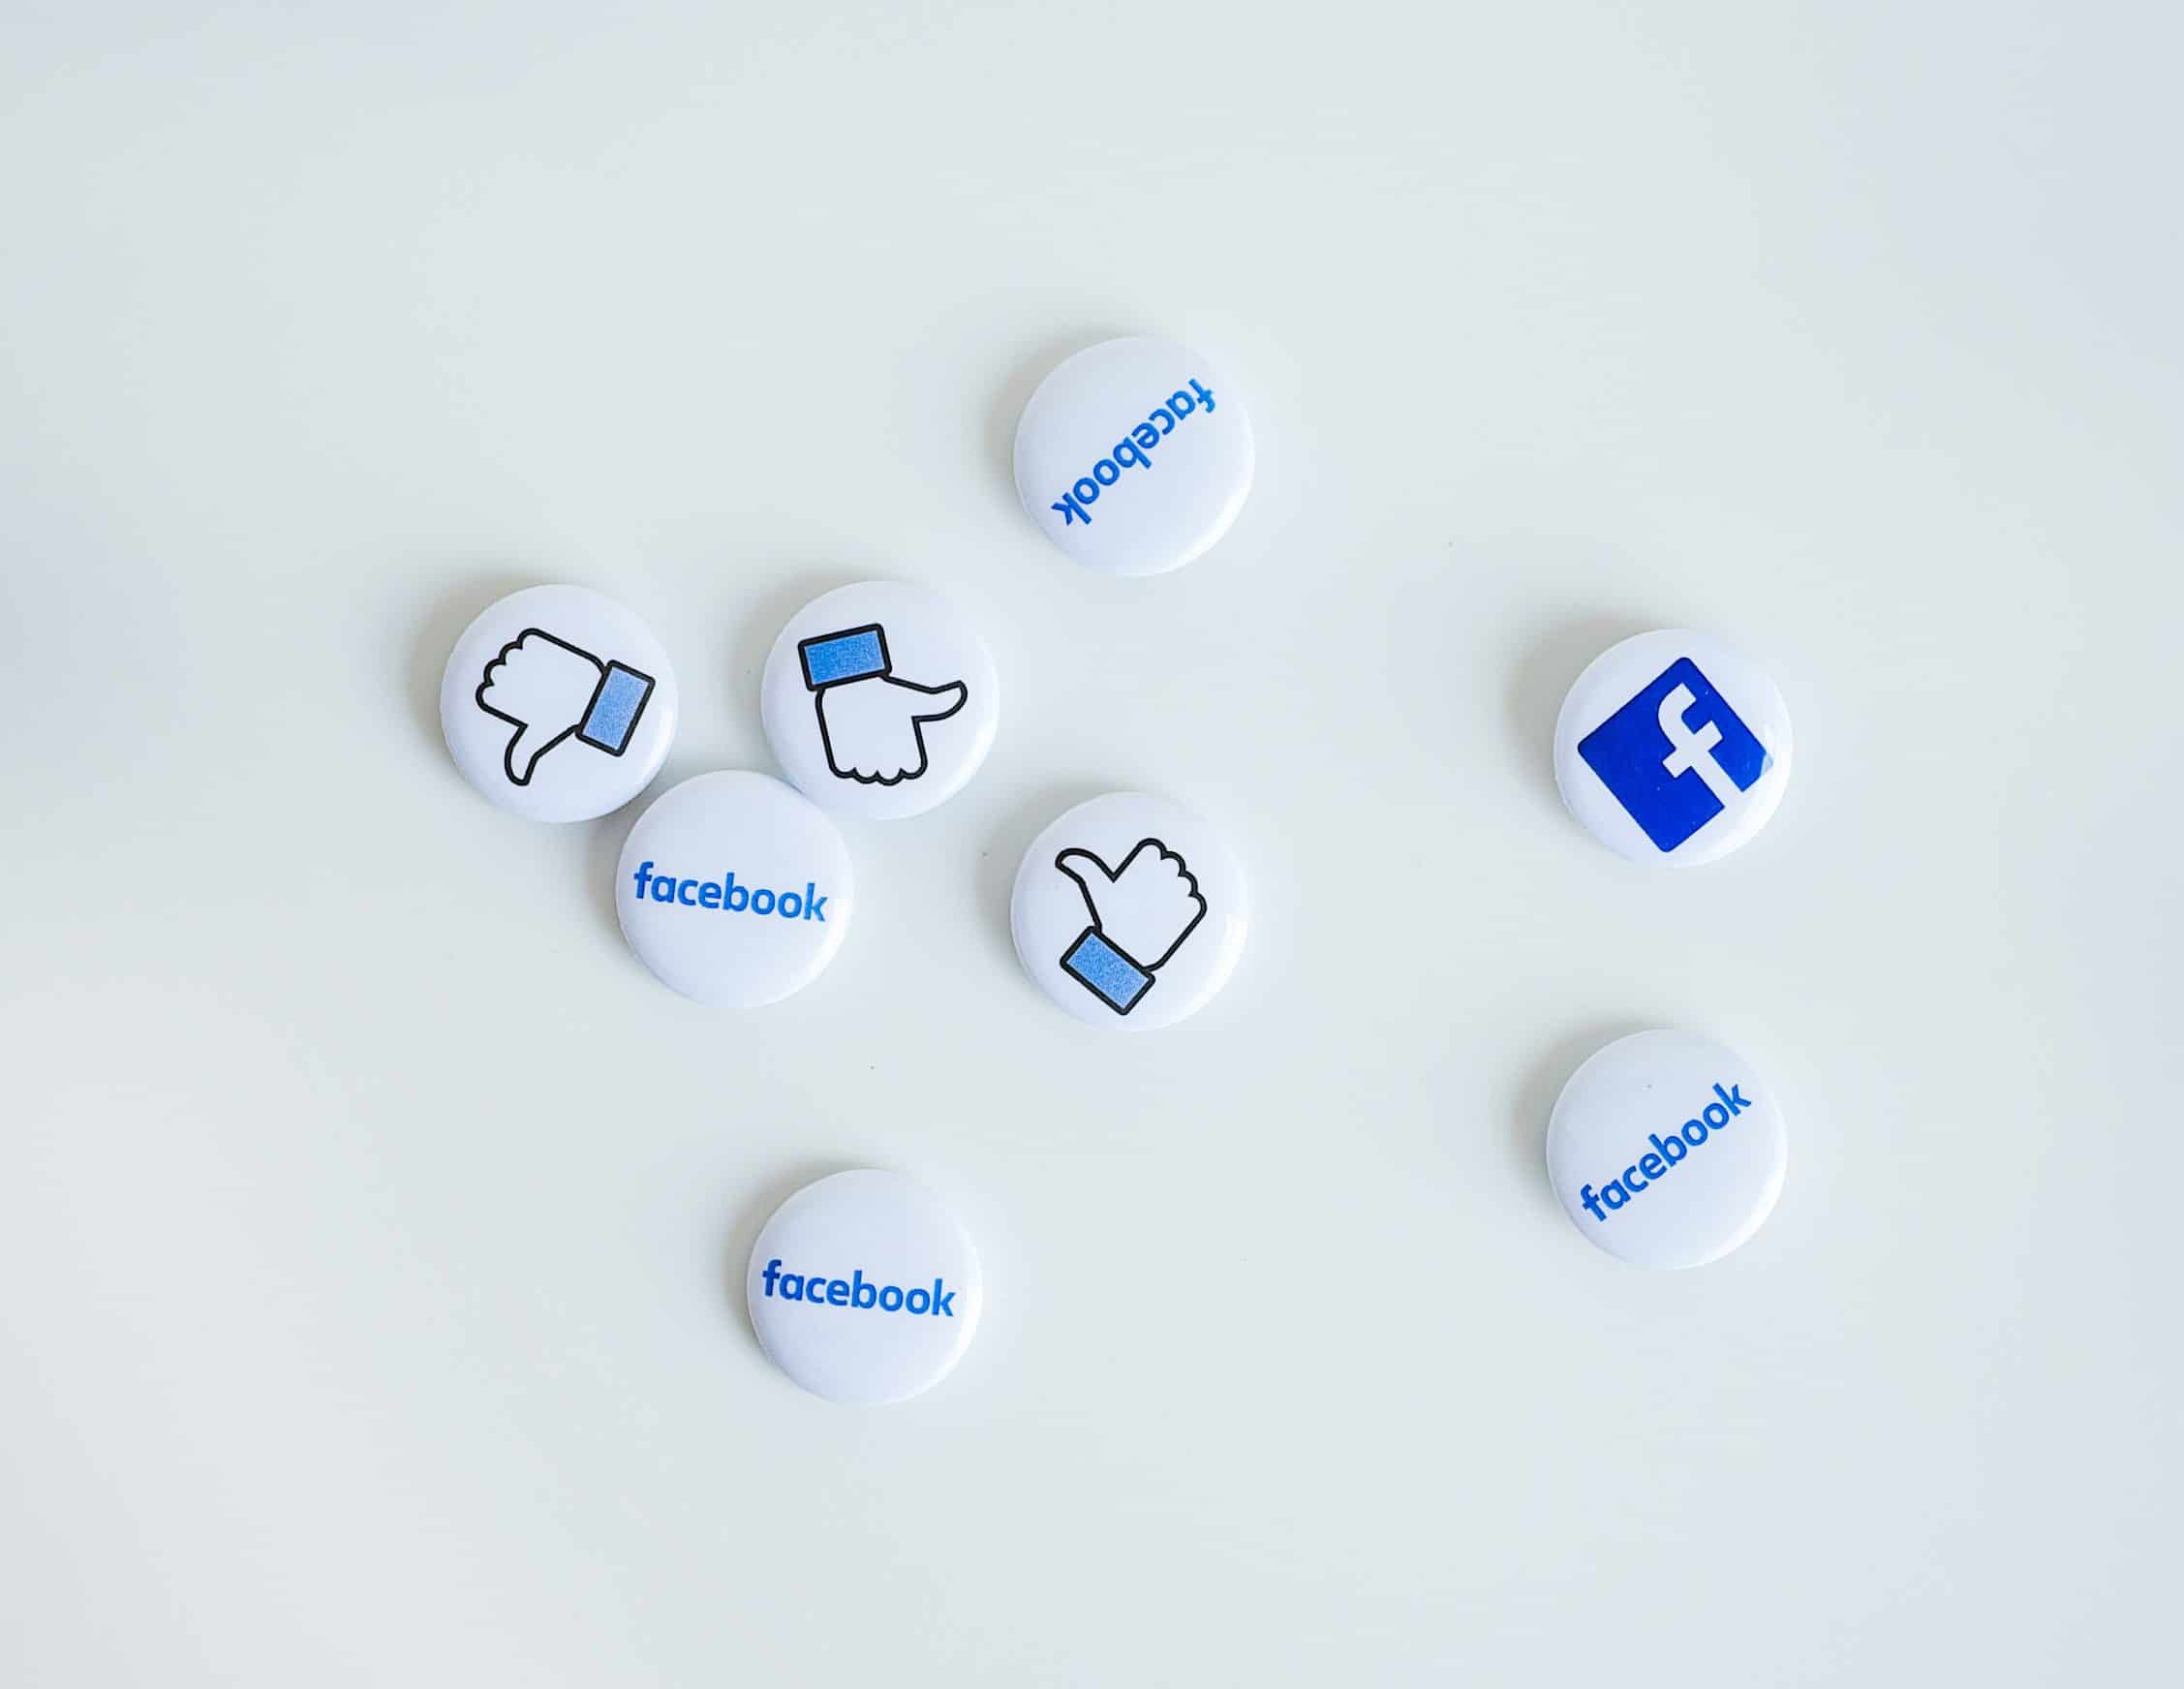 facebook-buttons-on-white-background